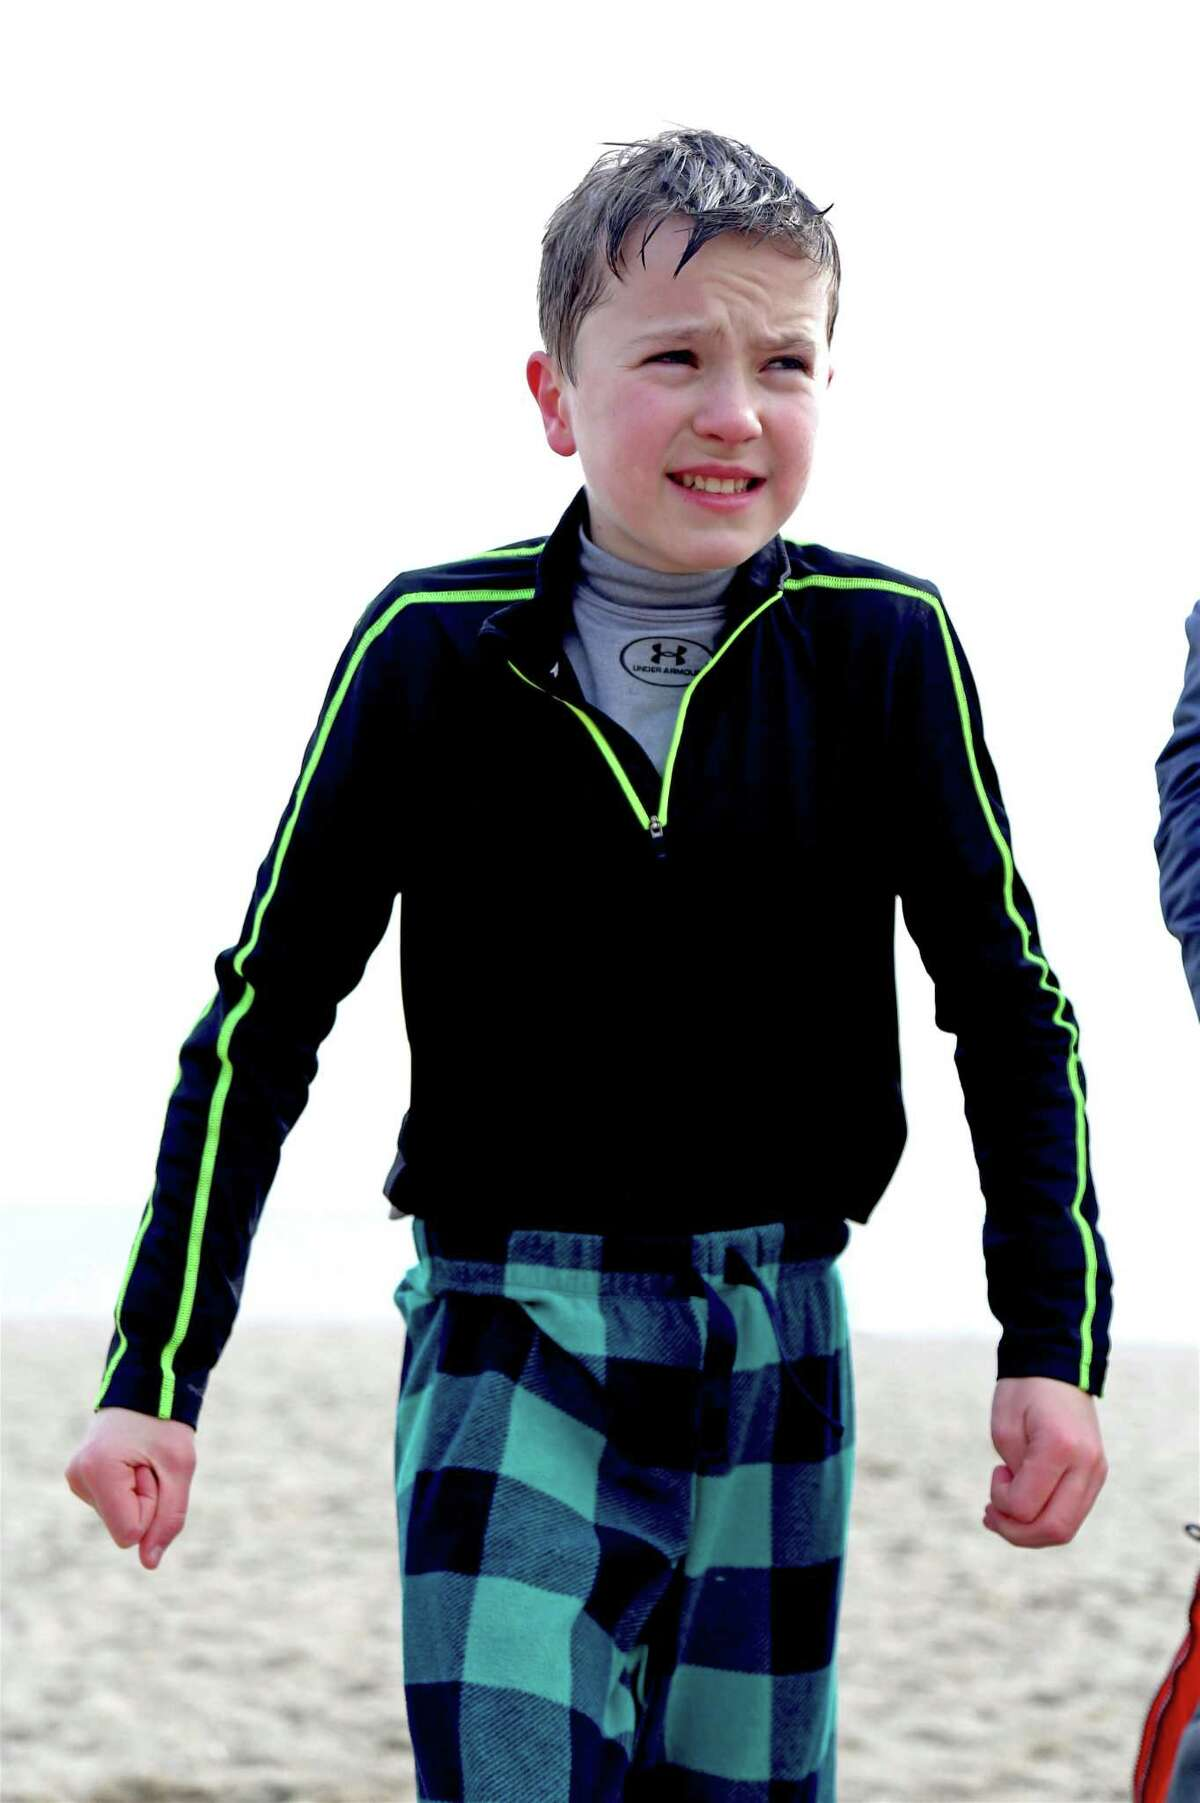 Charlie Lovett, 13, of Ridgefield, was the youngest participant at the 2nd annual Polar Bear Plunge, organized by Save the Children, at Jennings Beach on Sunday, Feb. 16, 2020, in Fairfield, Conn.